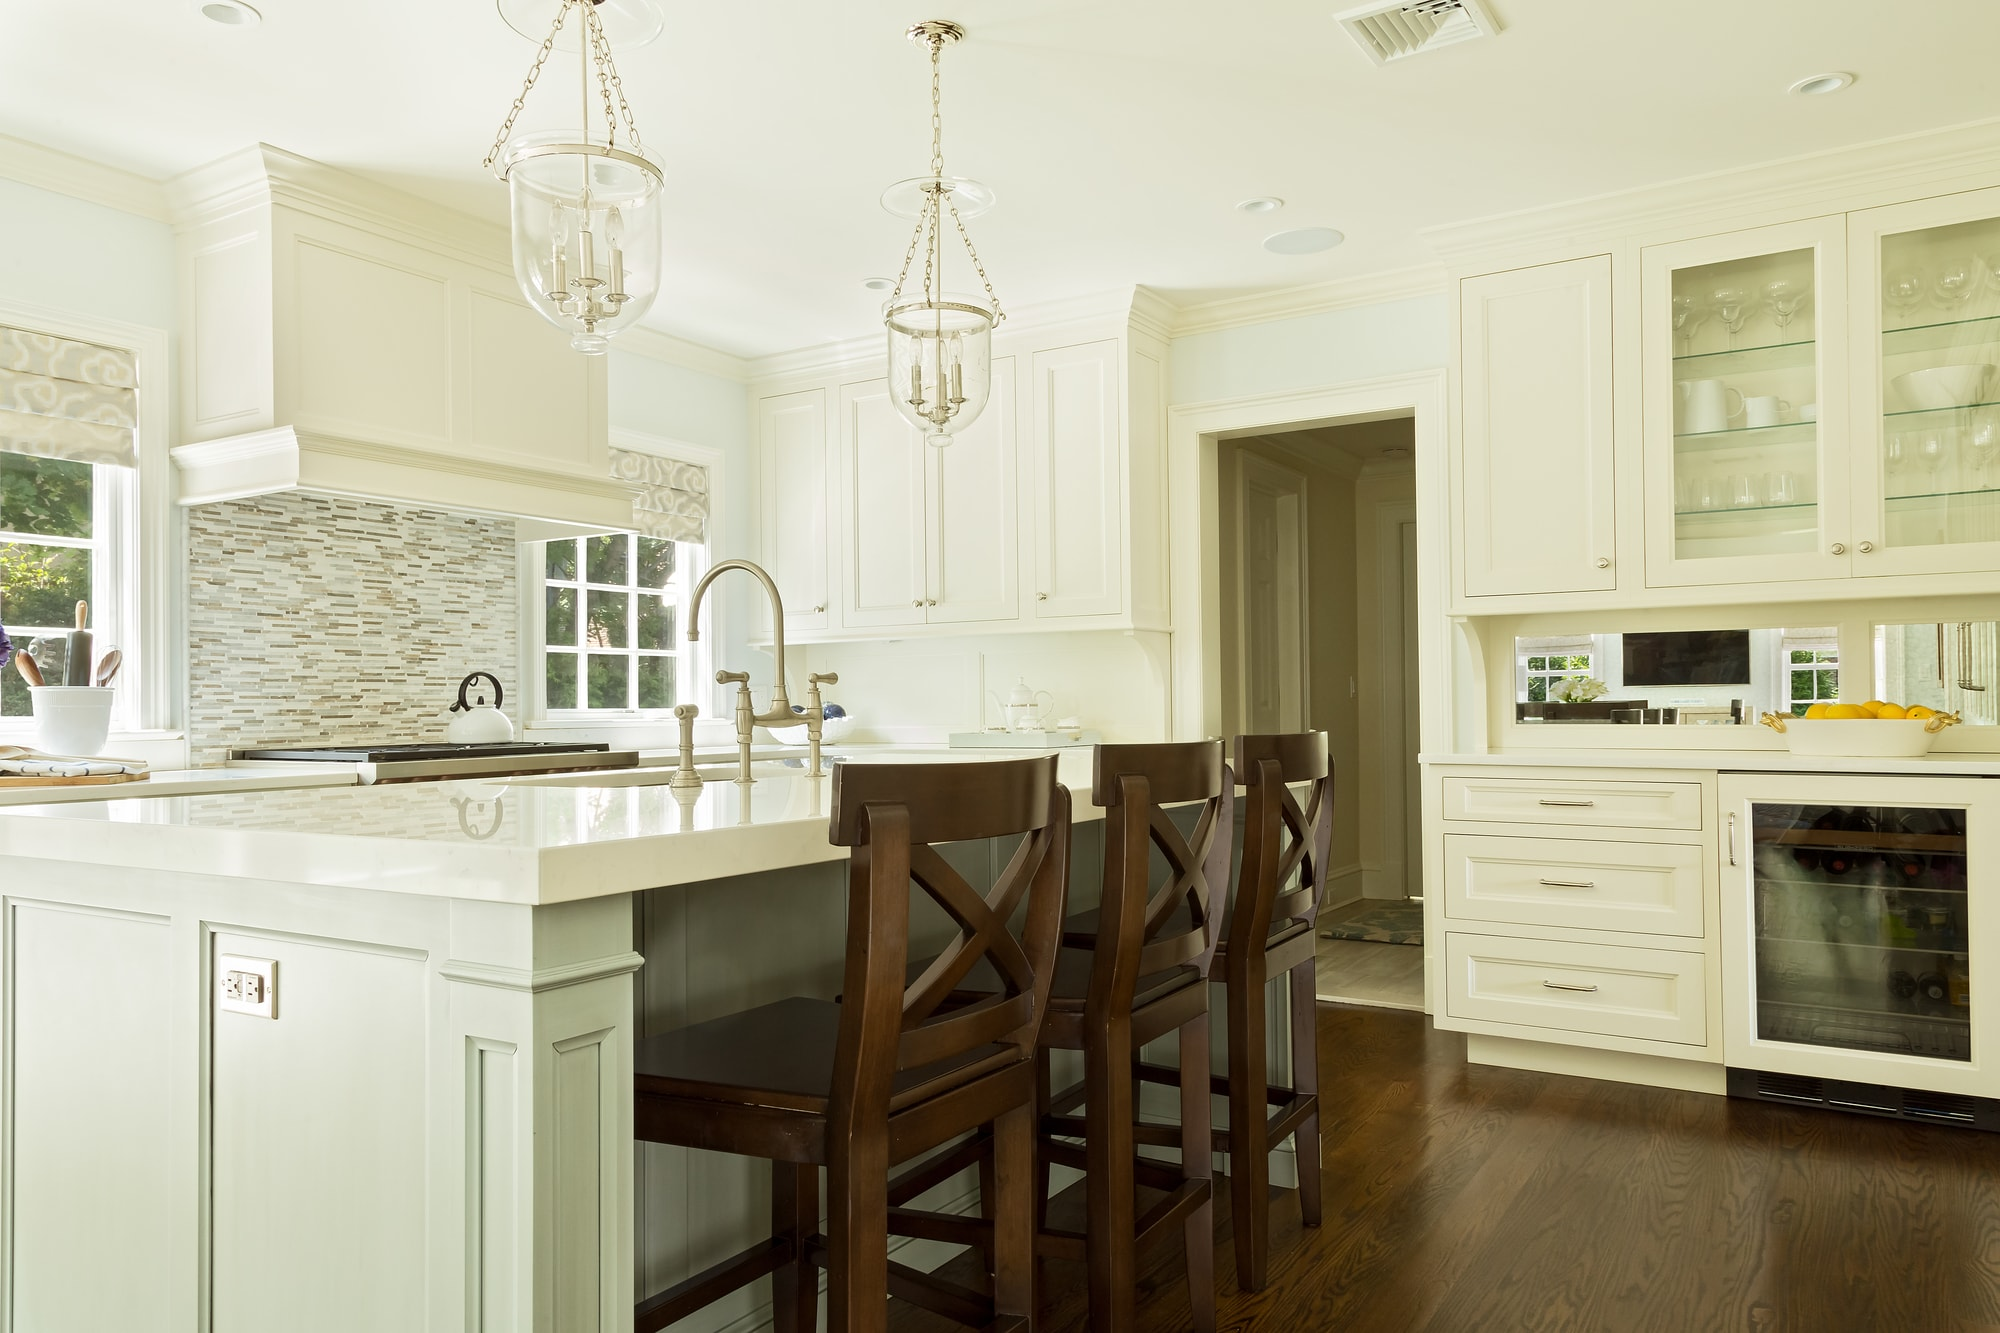 Transitional style kitchen with sink on kitchen island